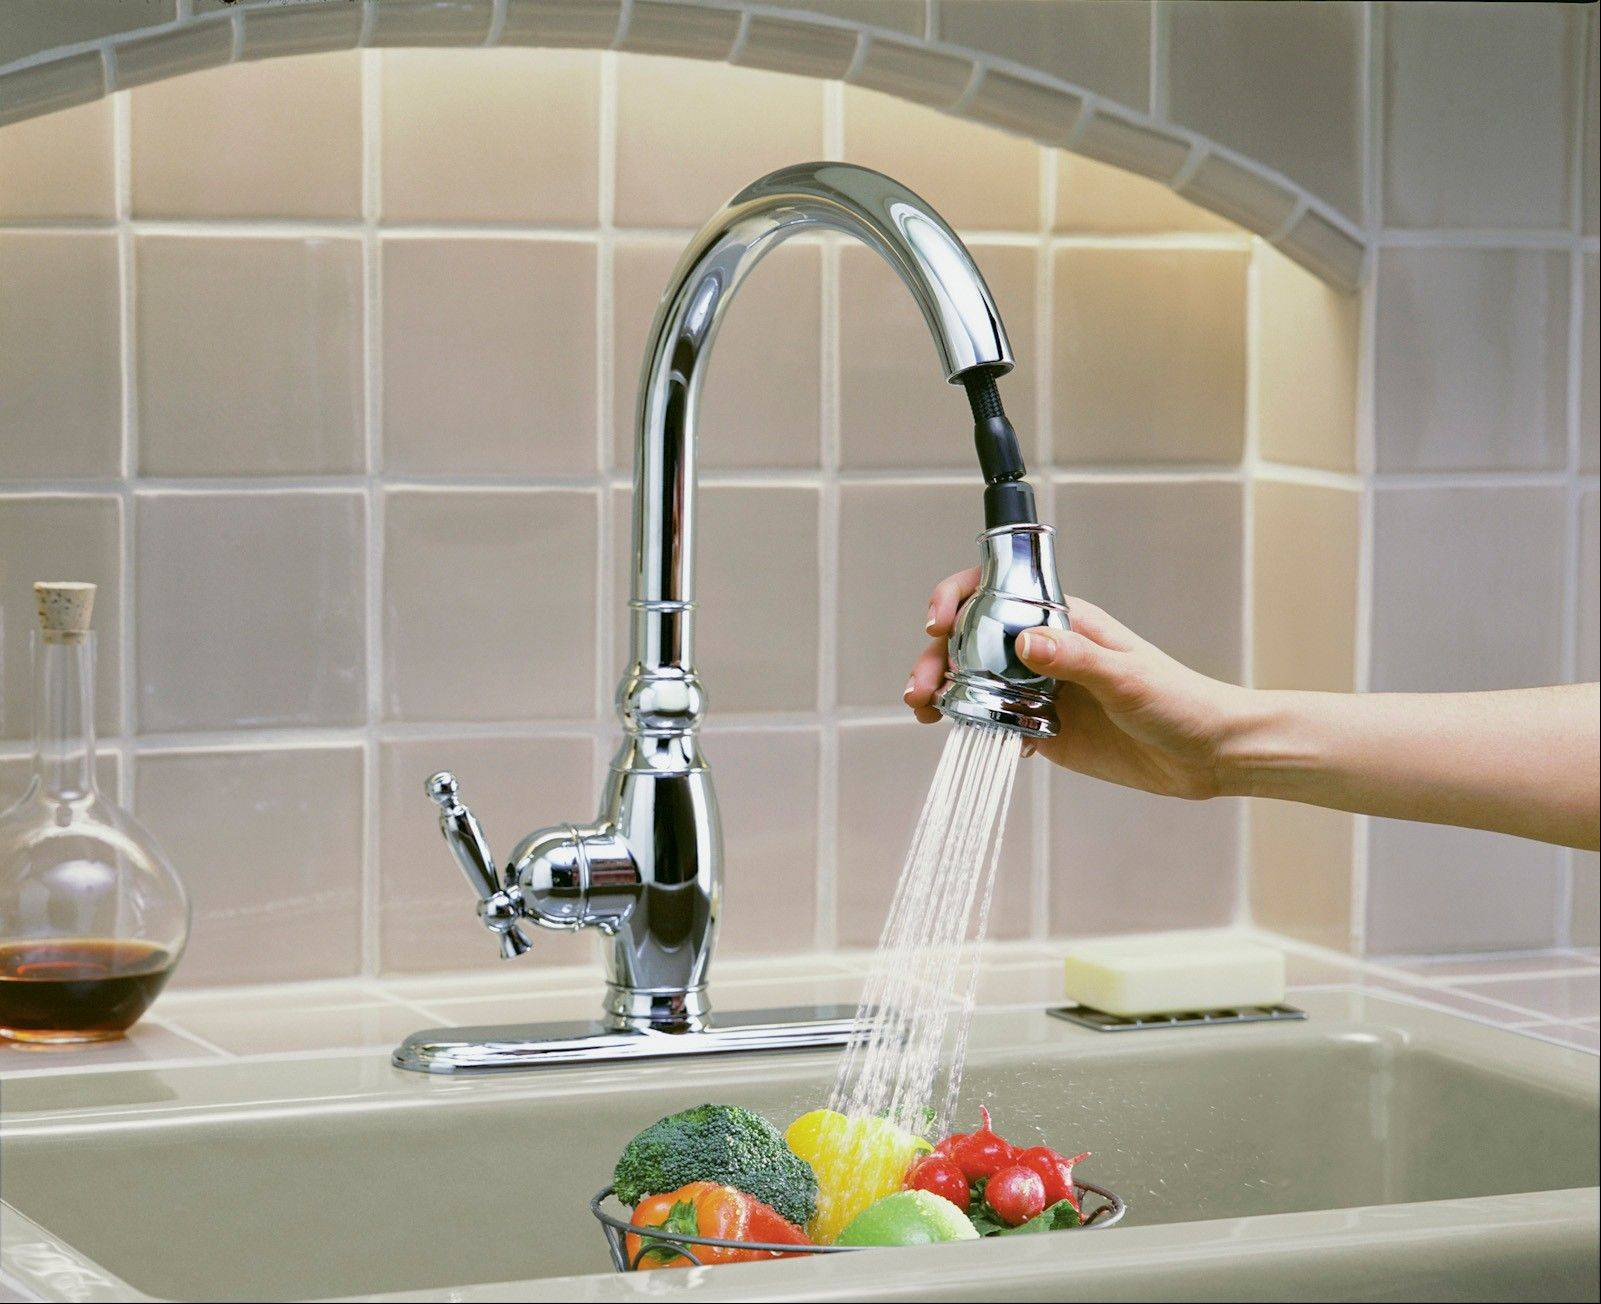 Pull-out faucets offer normal or spray-flow water settings.